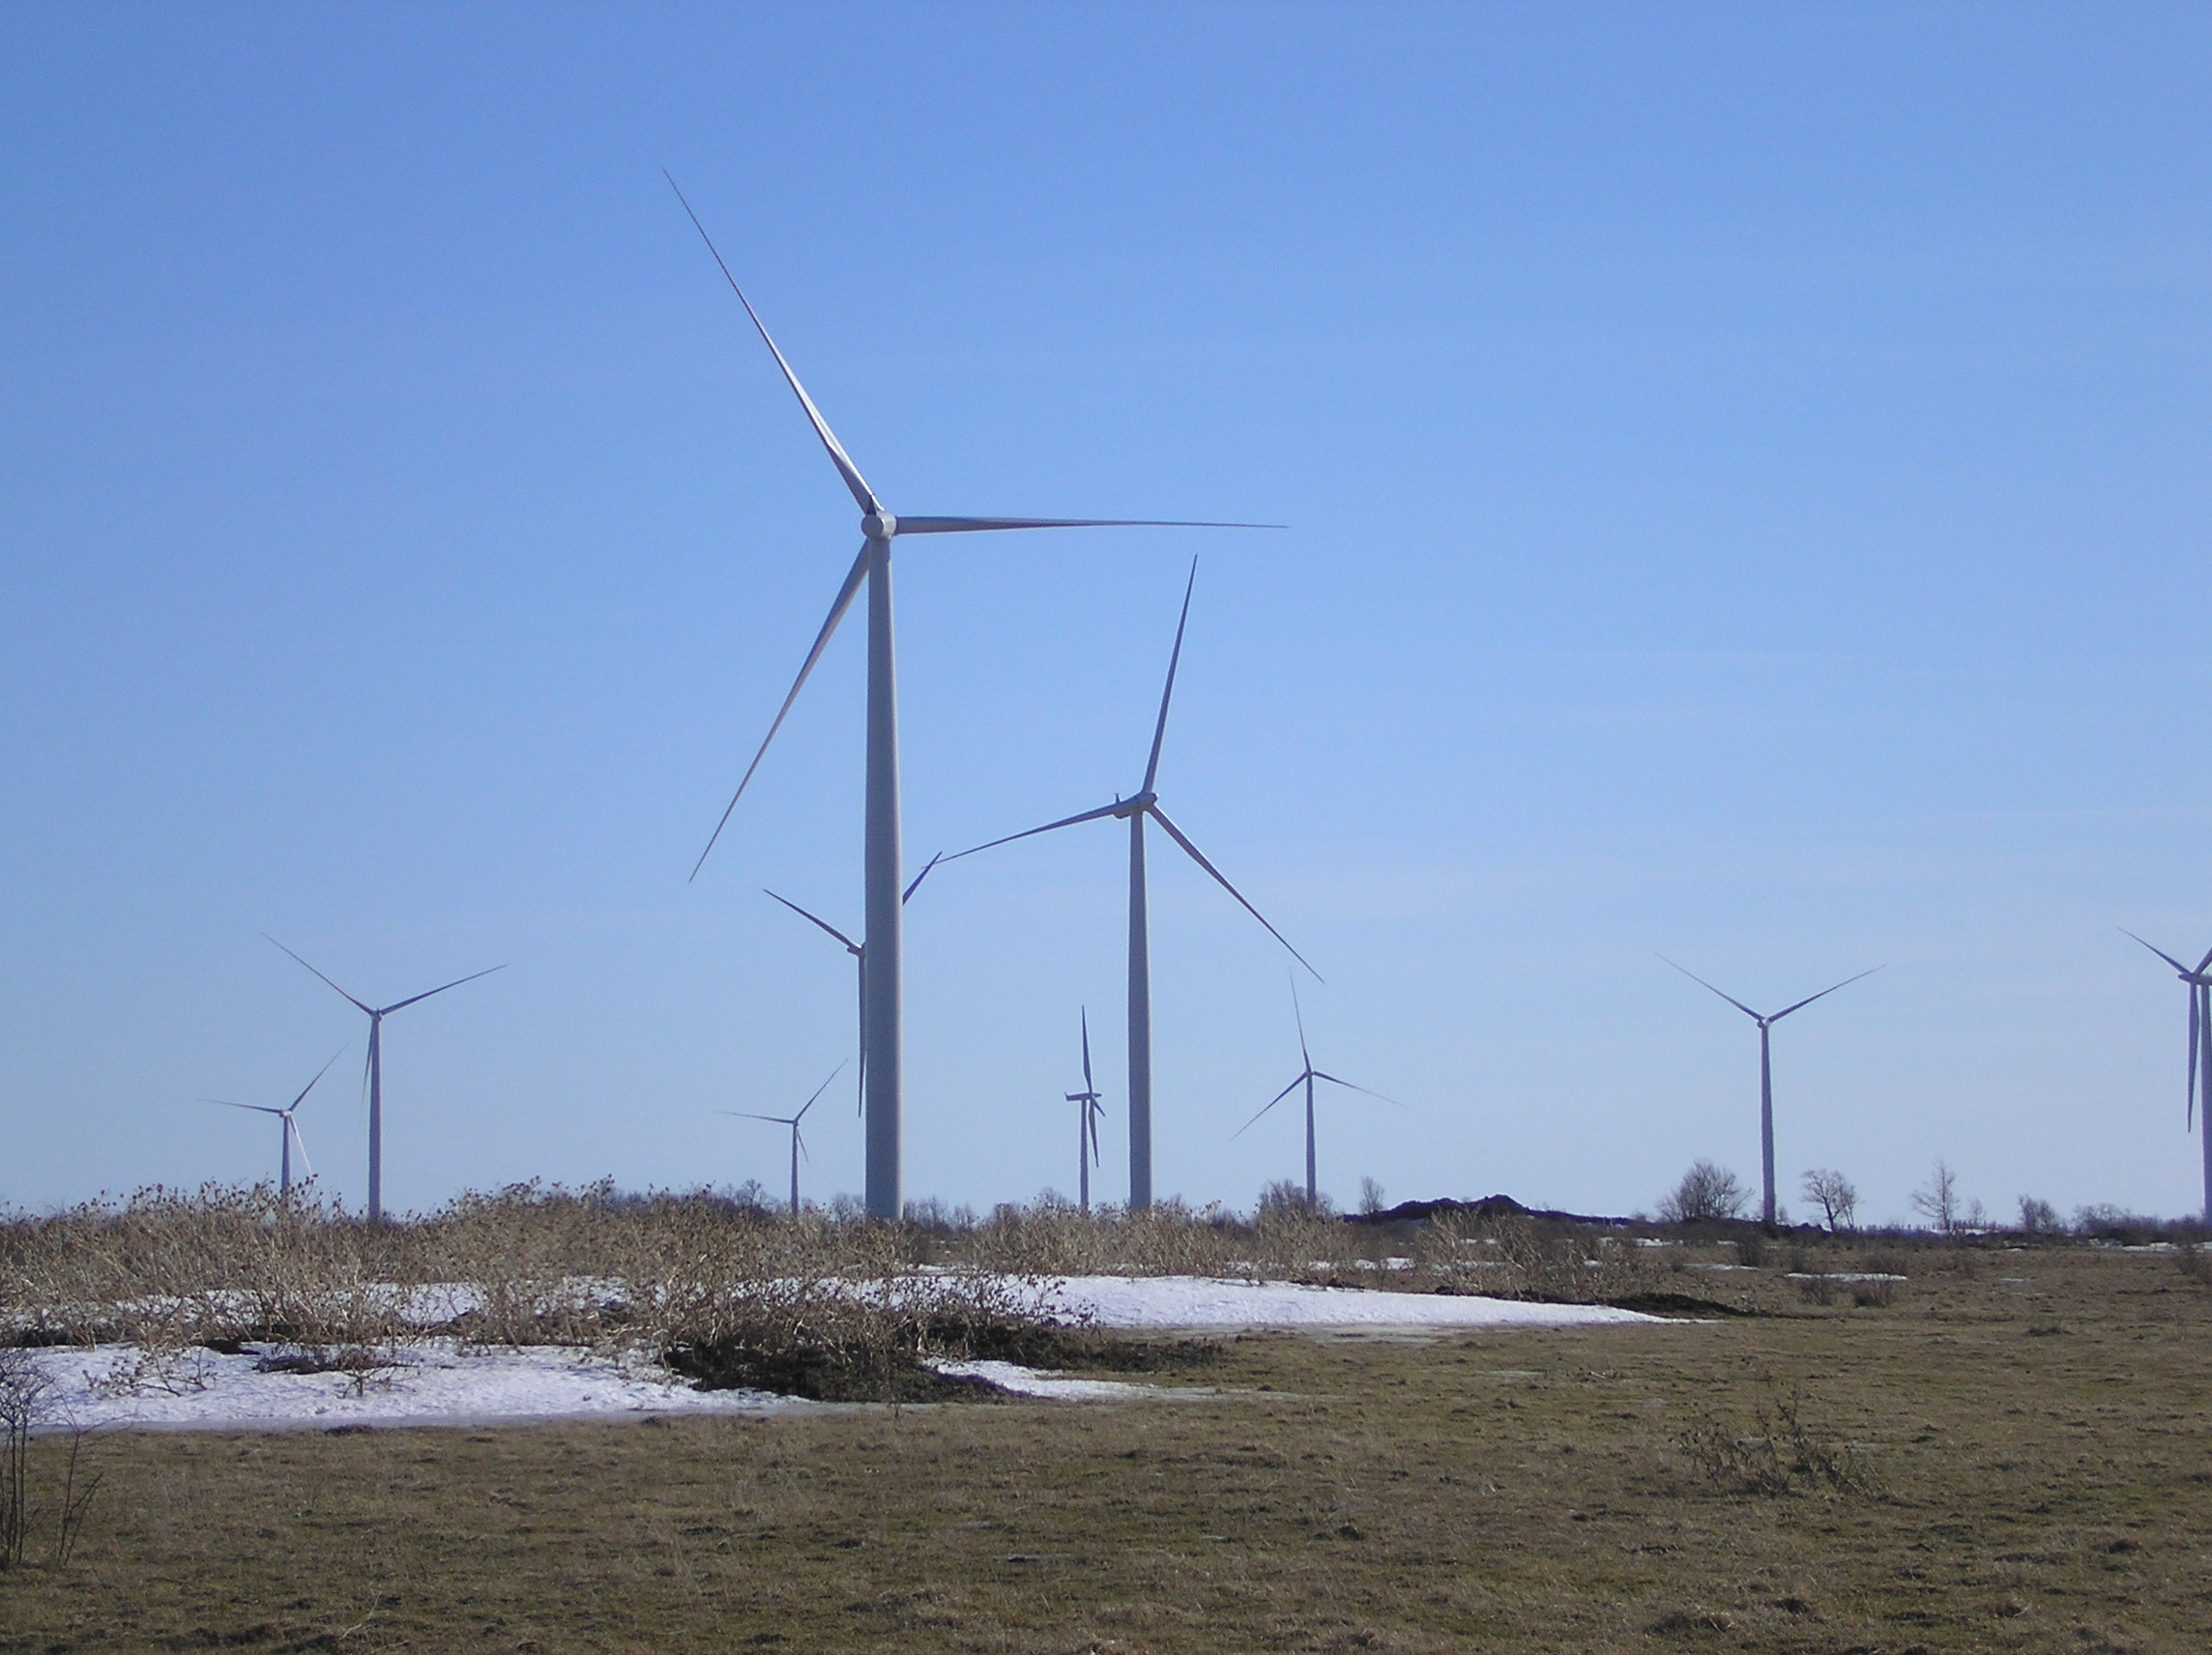 File:Wolfe island wind farm ls 09.JPG - Wikimedia Commons